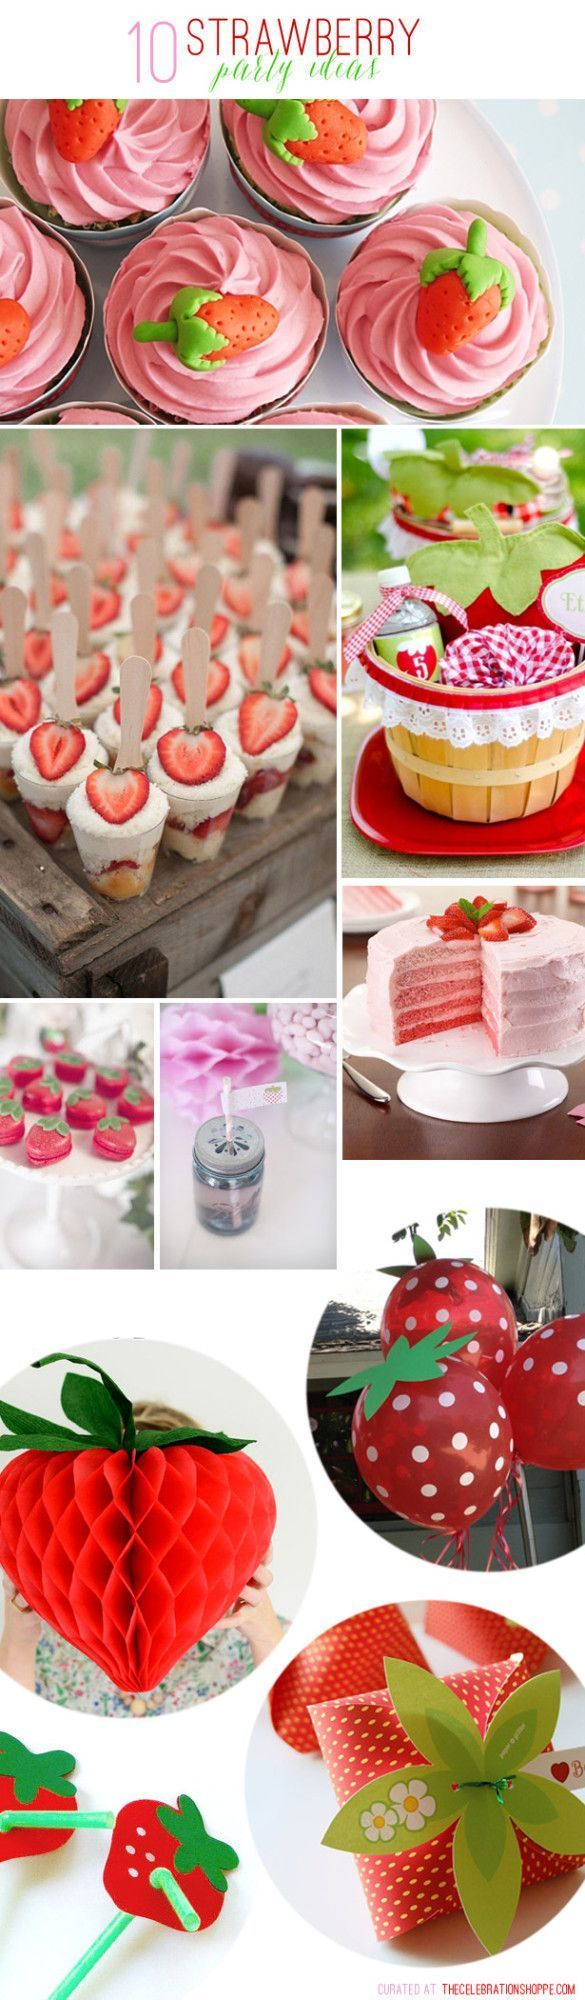 10 Strawberry Party Ideas and Recipes   Curated at TheCelebrationShoppe.com